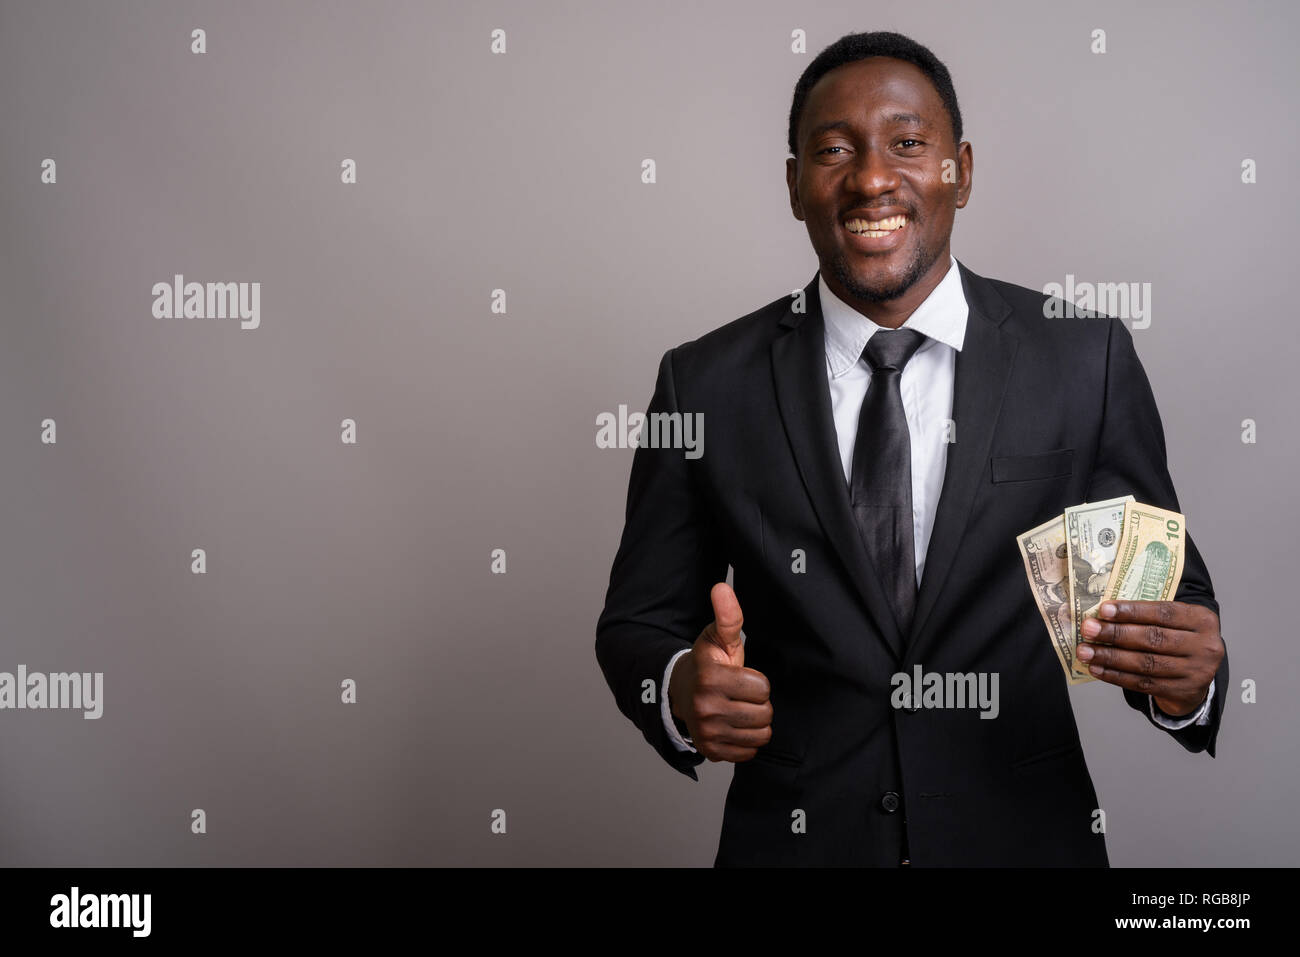 Young handsome African businessman holding money and smiling Stock Photo